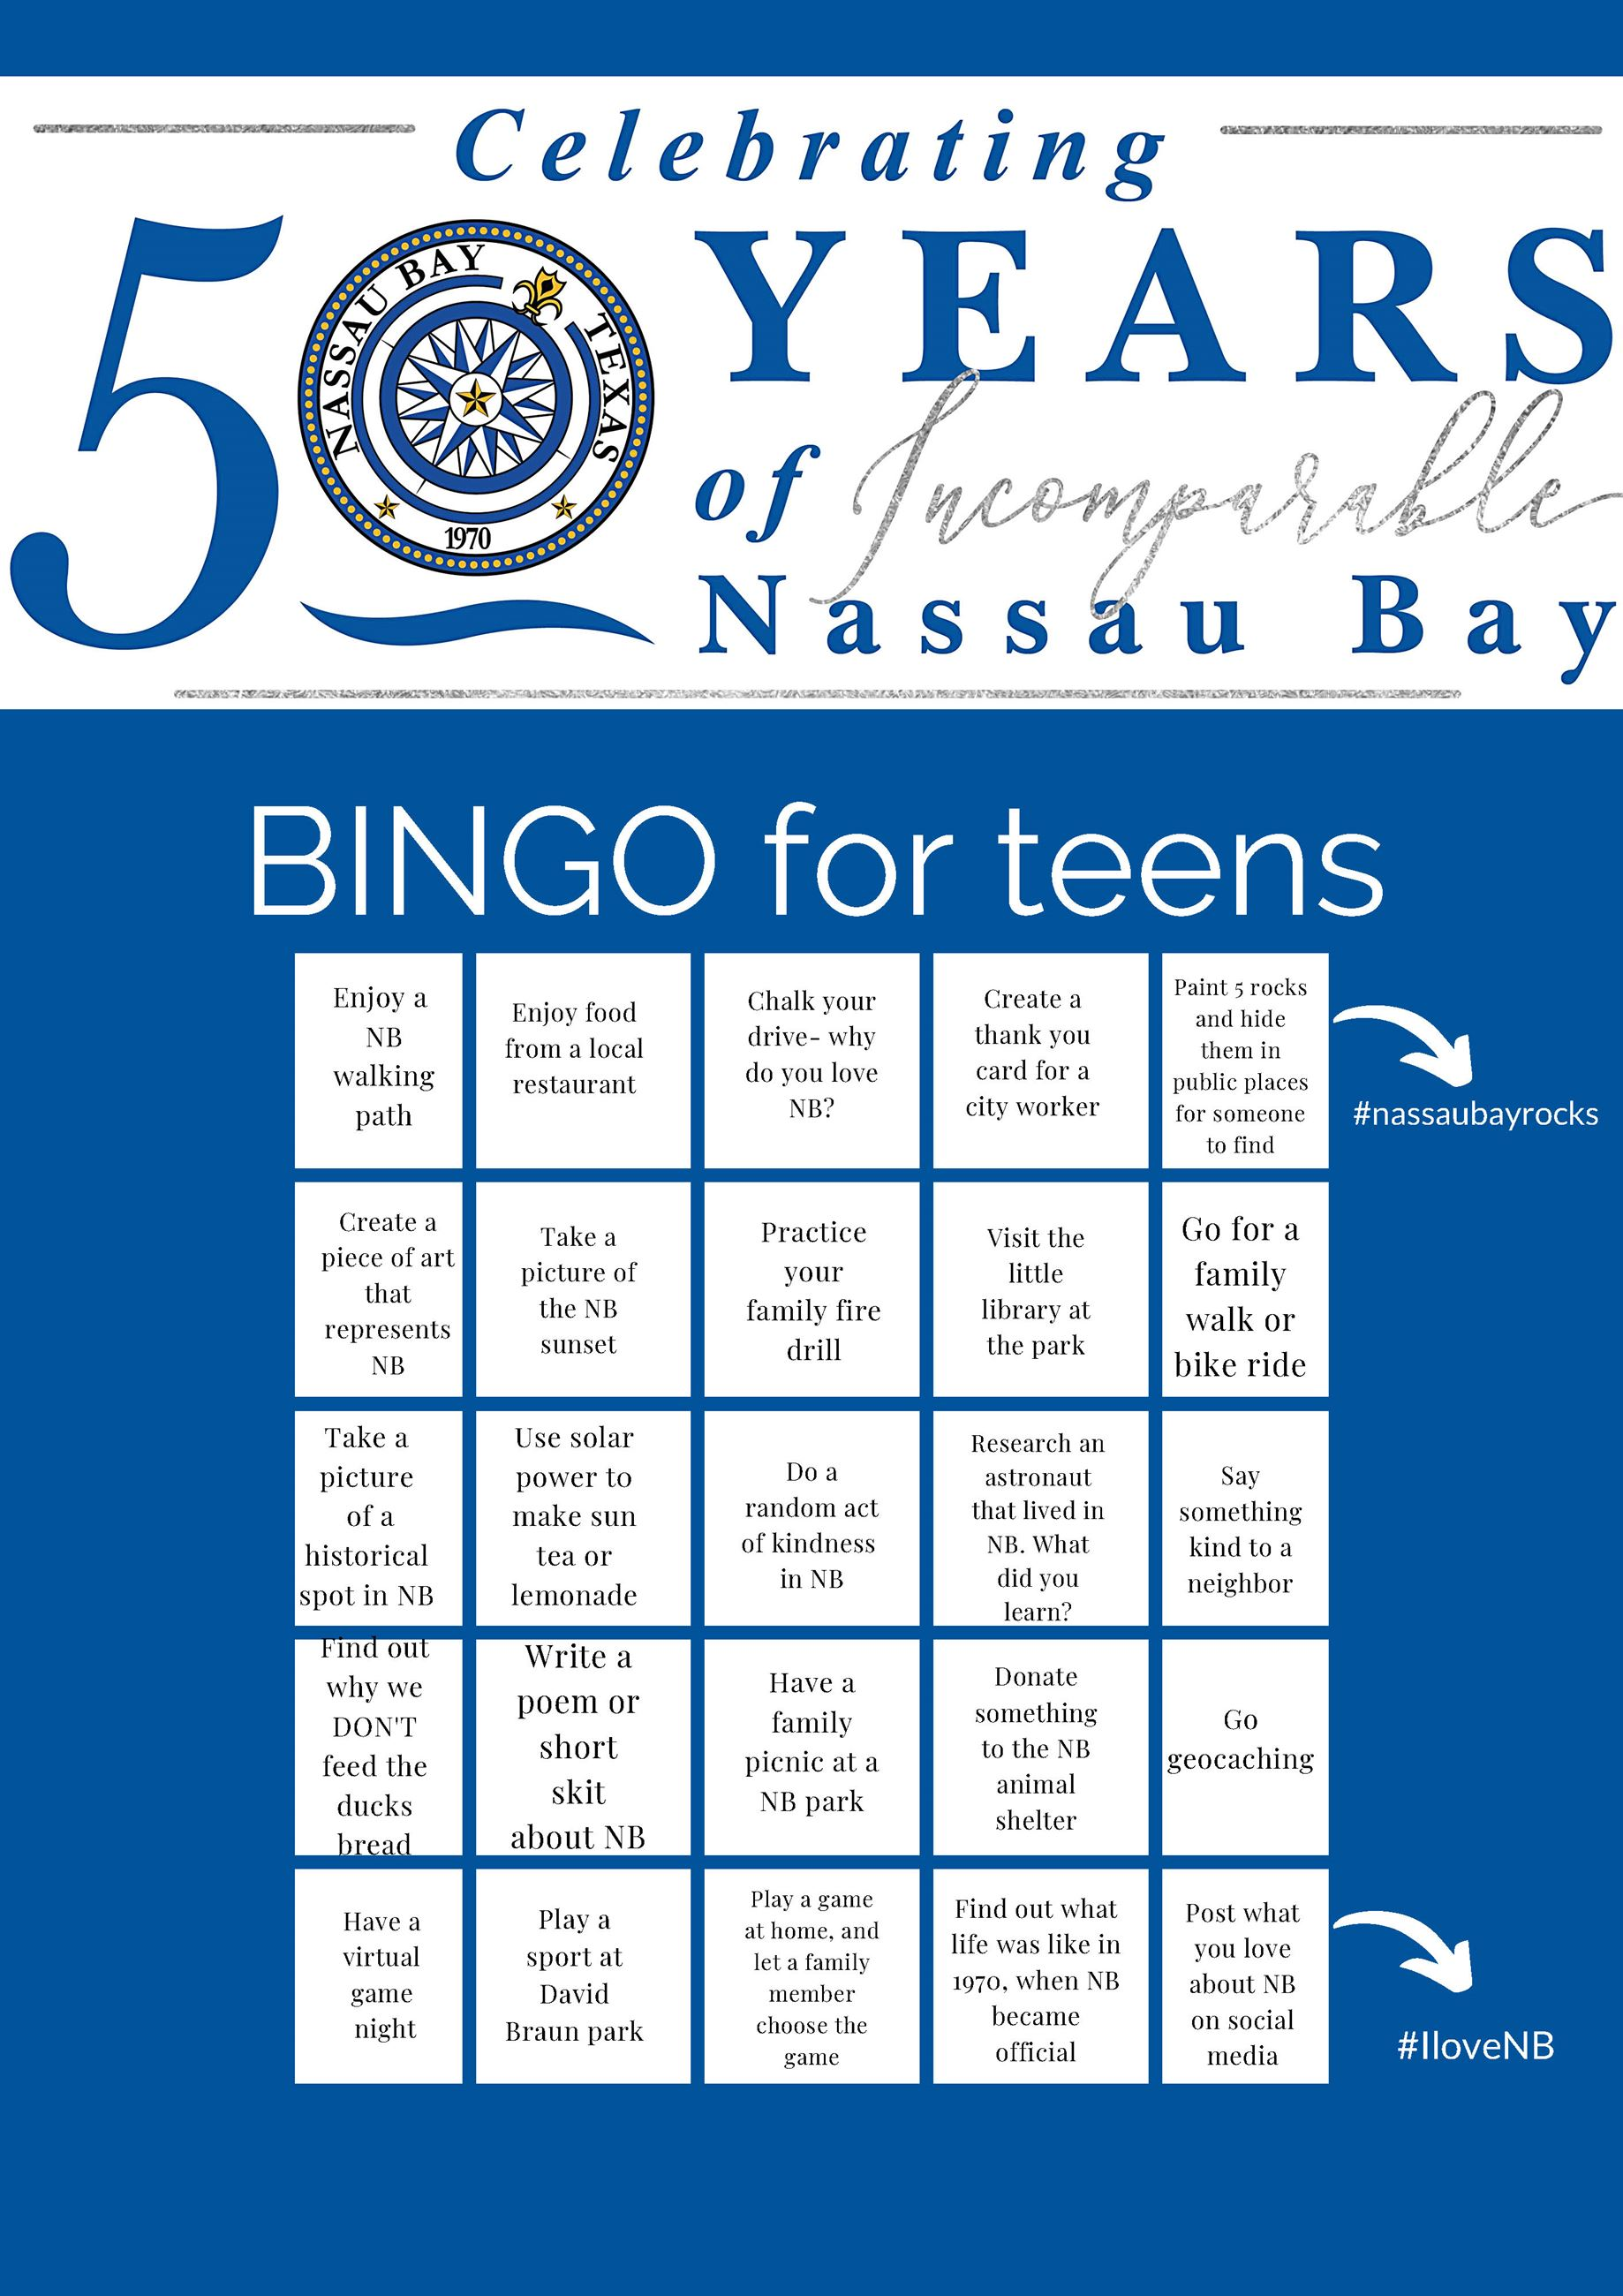 Nassau Bay 50th Bingo TEENS Opens in new window